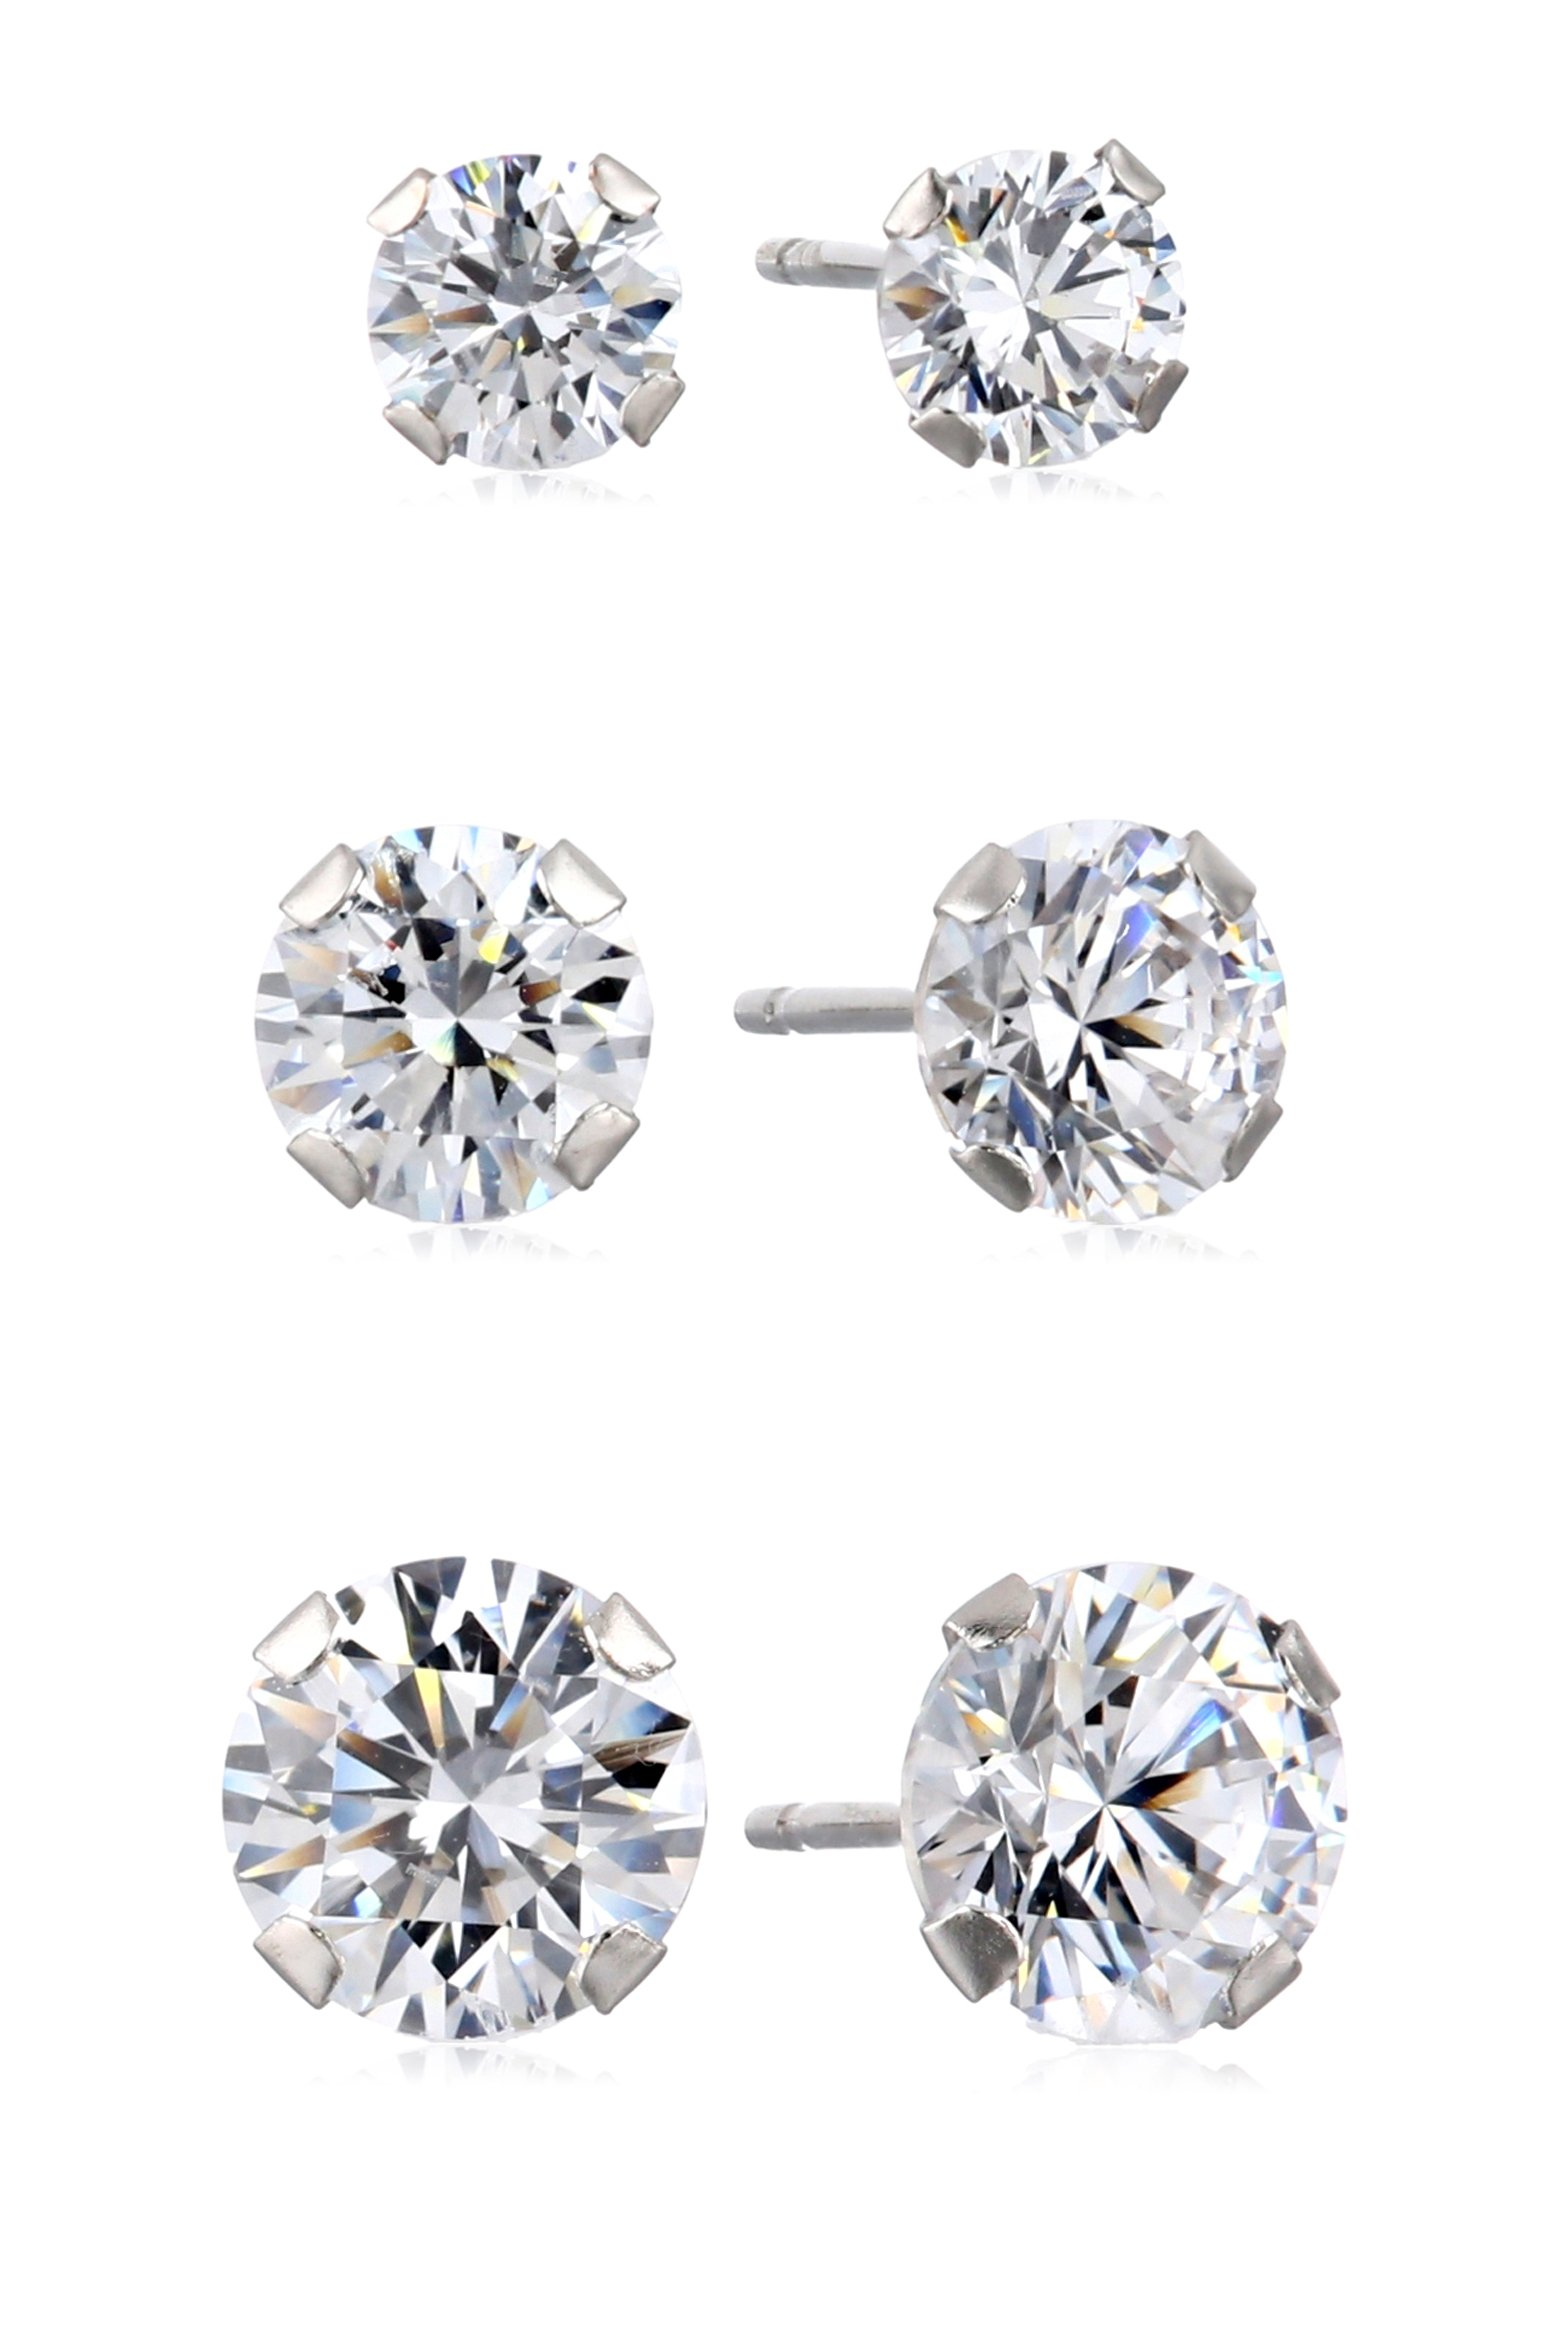 10K White Gold Three Stud Earrings set with Round Cut Swarovski Zirconia (3.5 cttw)